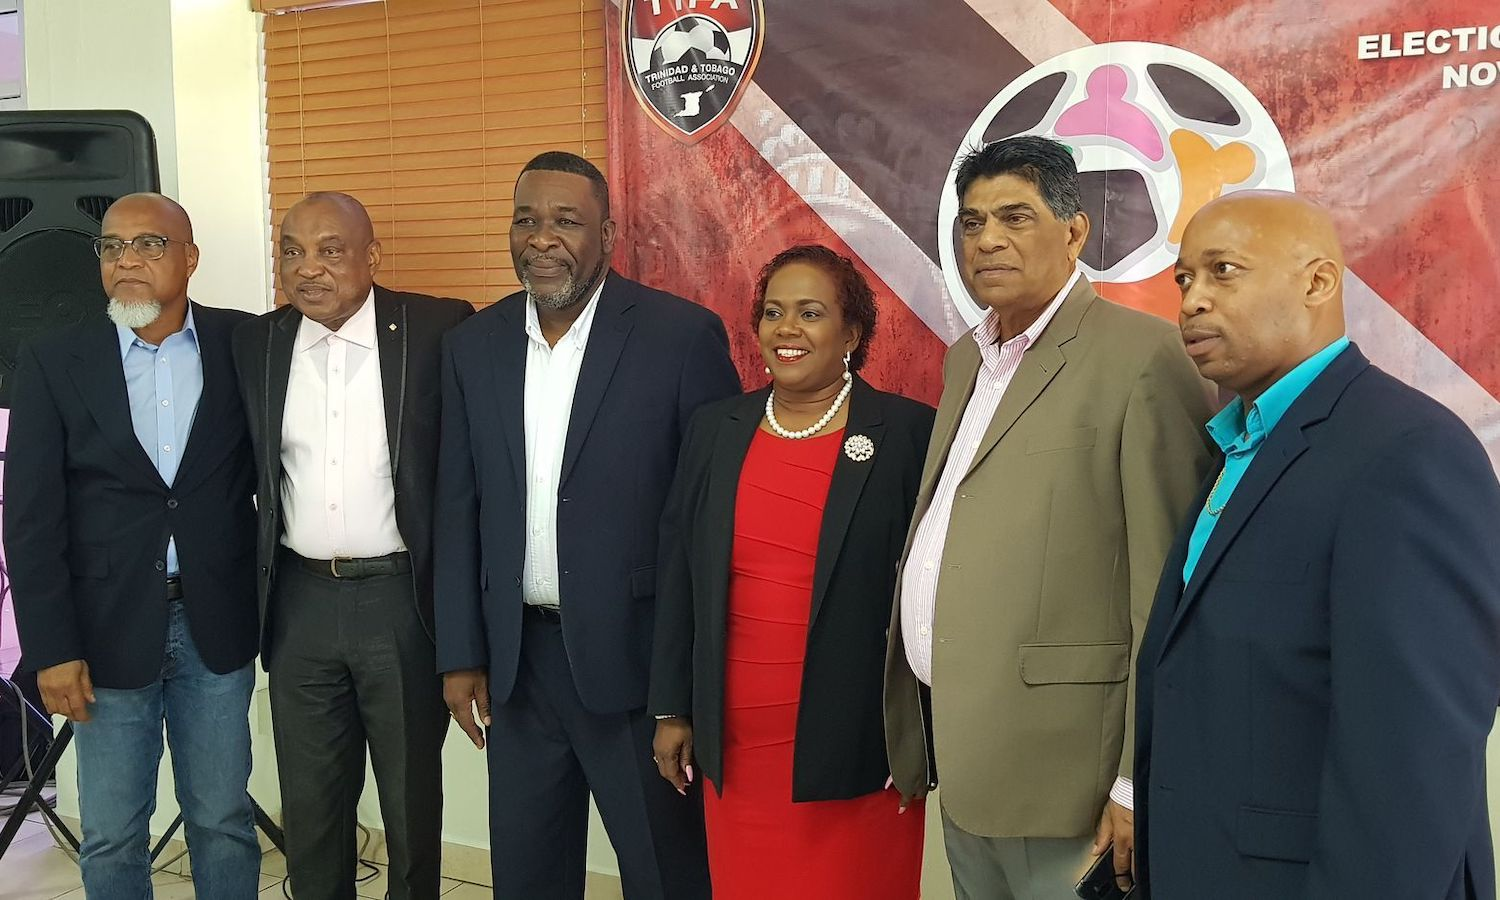 United TTFA president William Wallace, third from left, is flanked by Keith Look Loy, left- TTSL Board member, Joseph Sam Phillip- vice president, Clynt Taylor- his first vice president at right, Anthony Harford- president of the NFA, second from right, Susan Joseph-Warrick, second vice president, at November 2019 Breakfast Launch for their slate.